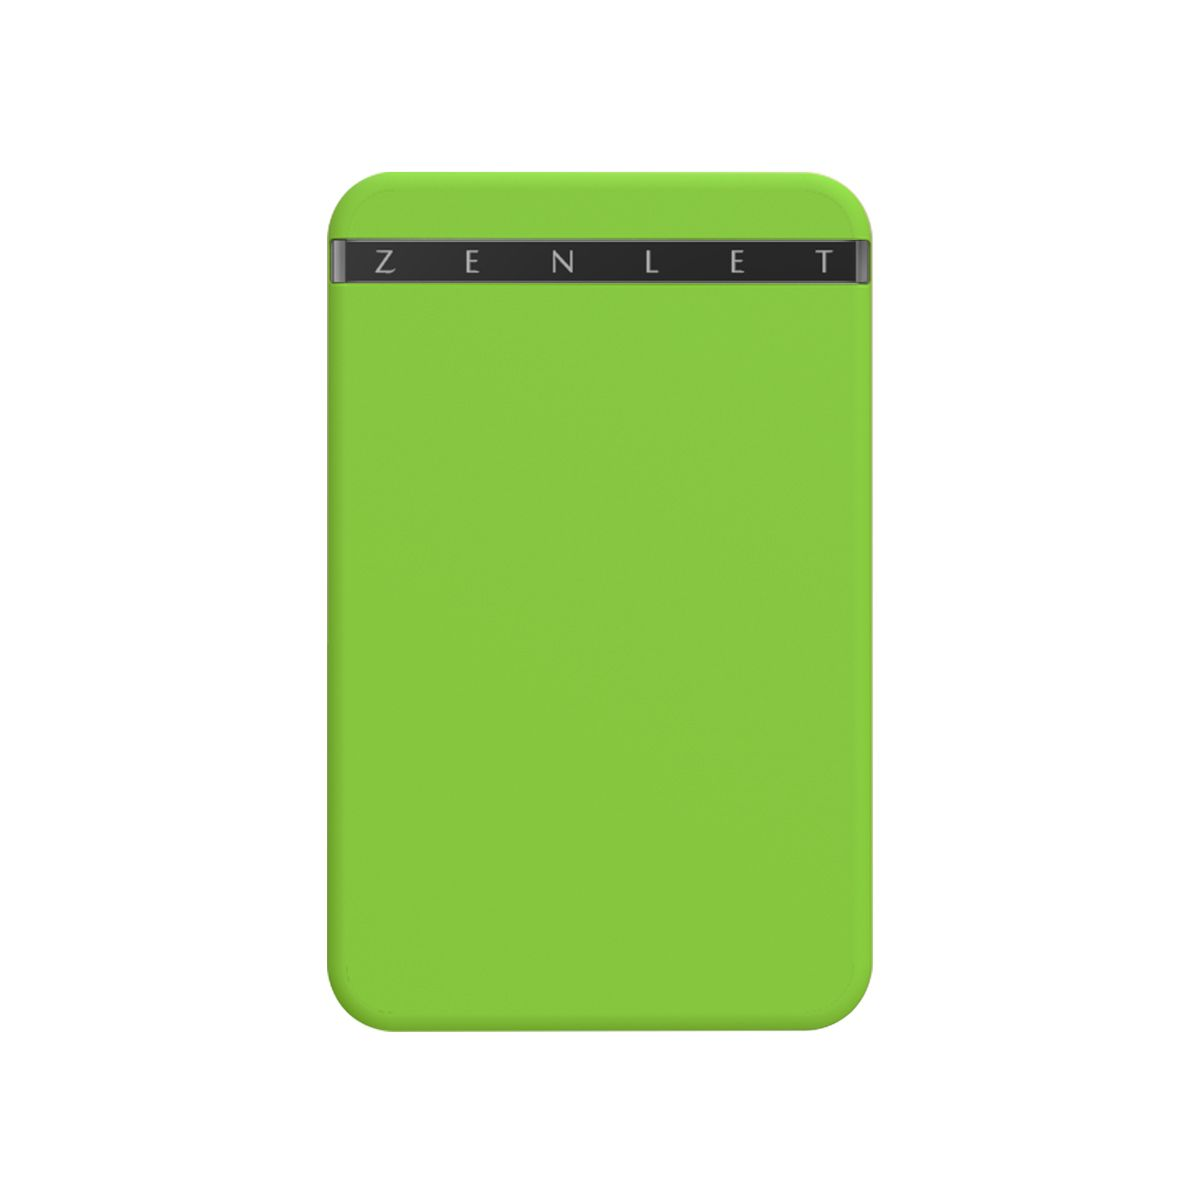 ZENLET The Ingenious Wallet - Green